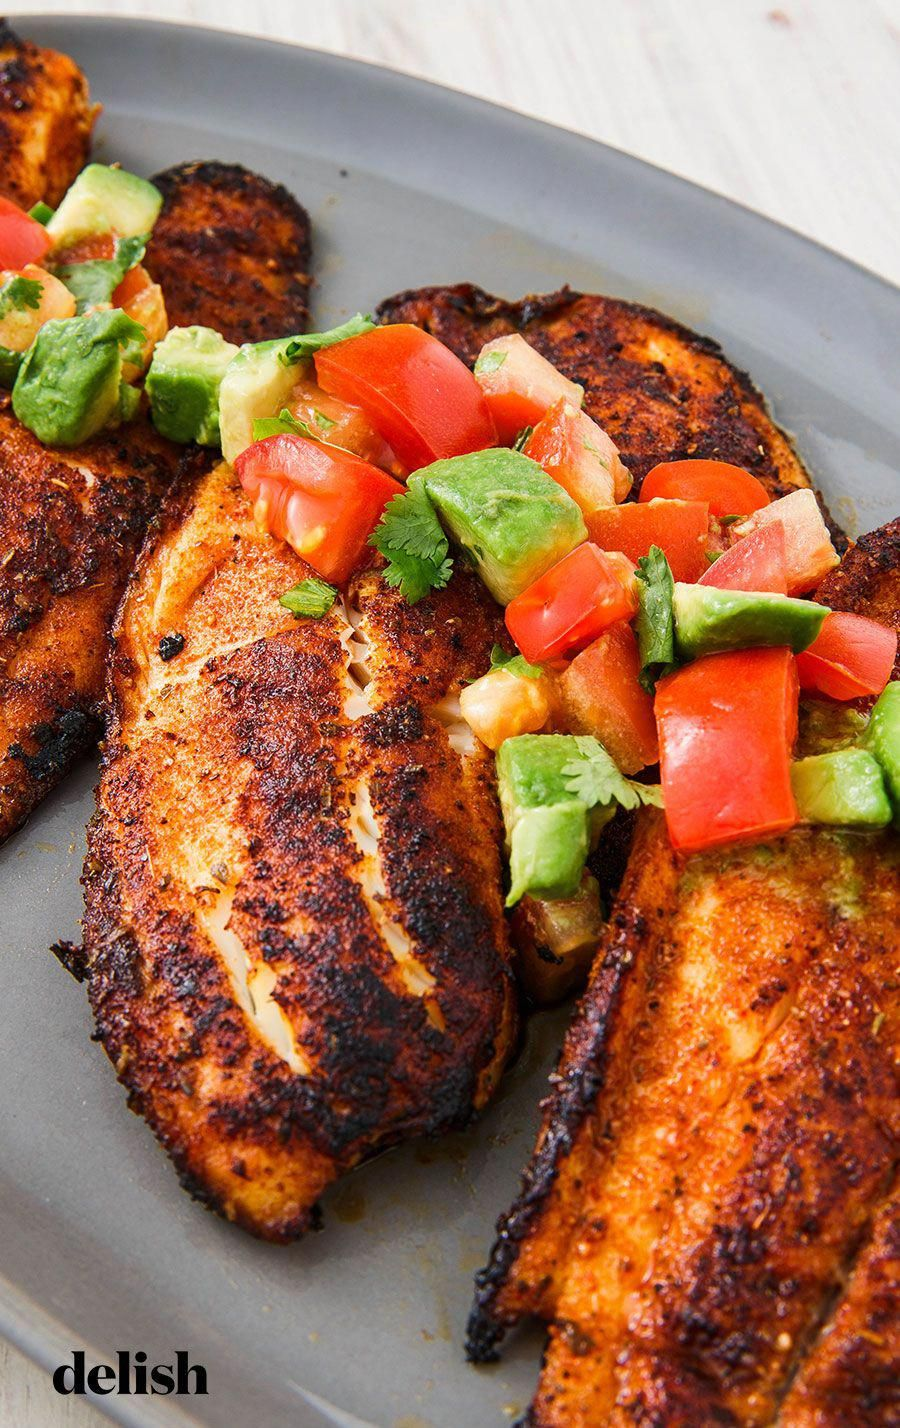 This blackened tilapia recipe will make you look forward to meatless Mondays. Get the recipe from .